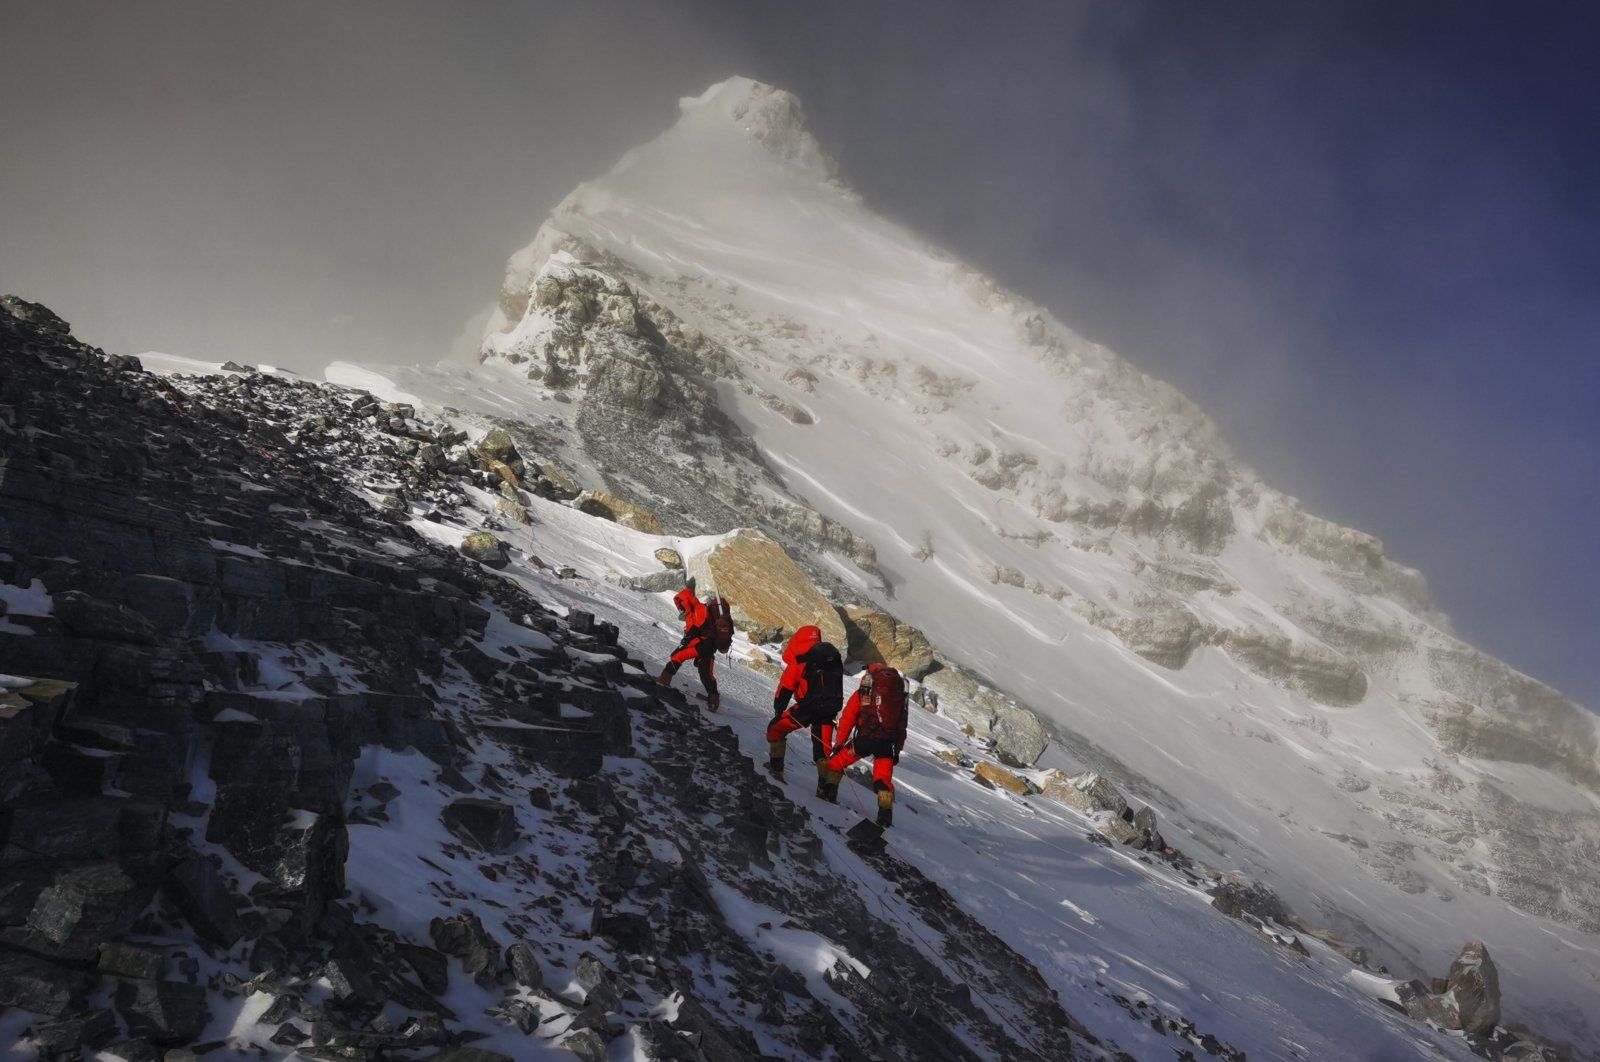 In this photo released by Xinhua News Agency, members of a Chinese surveying team head for the summit of Mount Everest, also known locally as Mt. Qomolangma, May 27, 2020. (AP Photo)